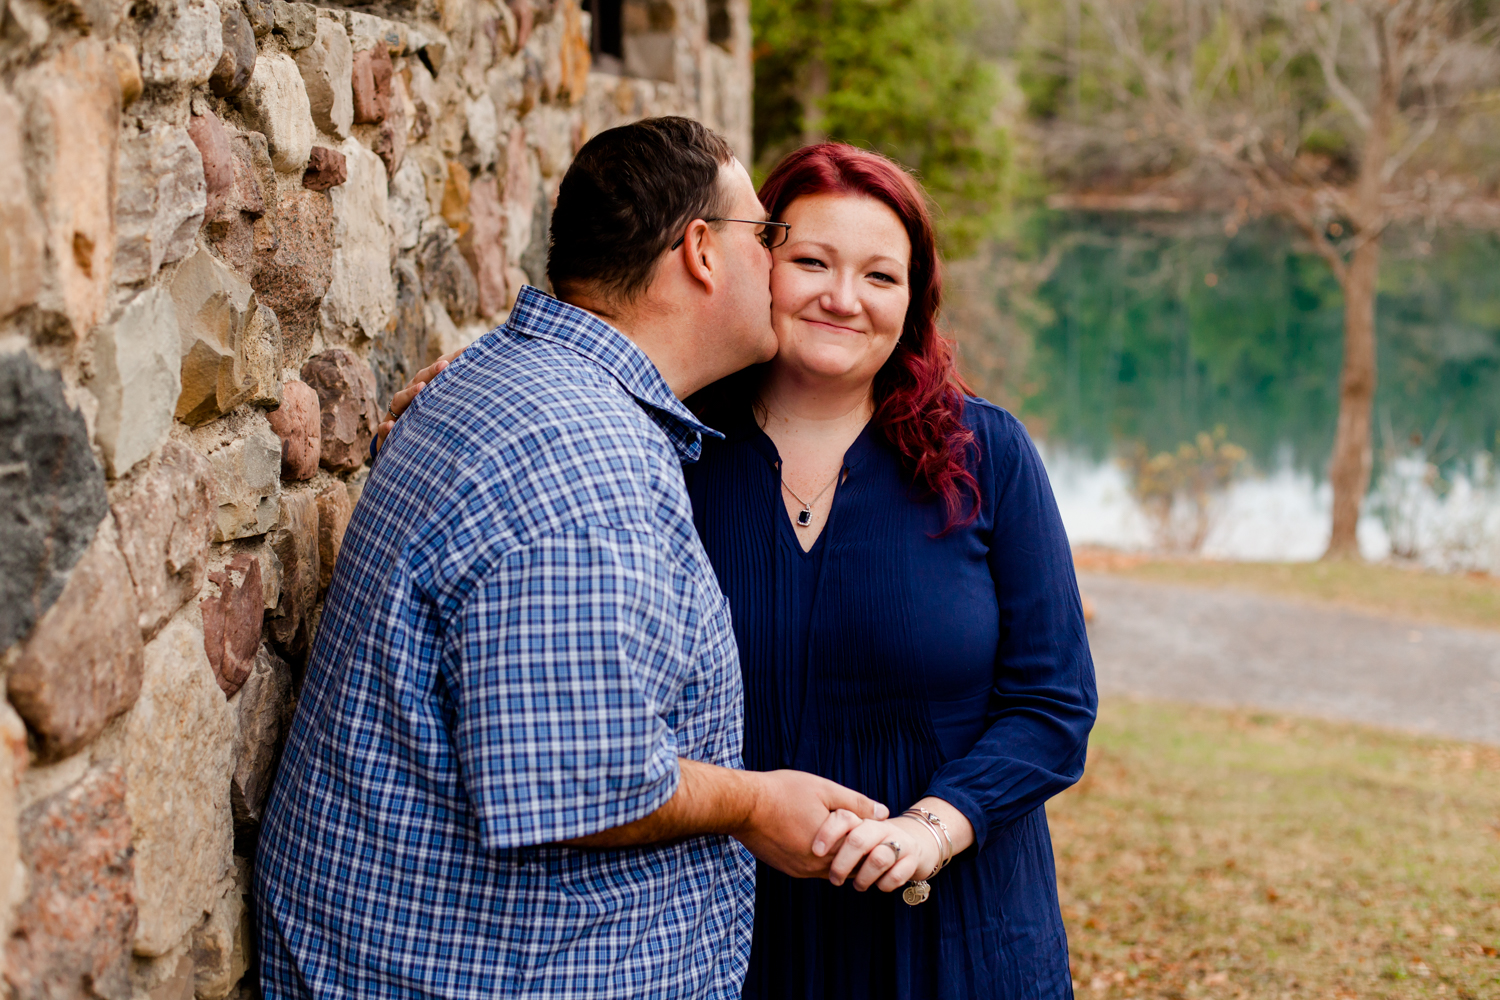 Man kisses his fiance on the cheek during their engagement session. They both are wearing navy blue tops.